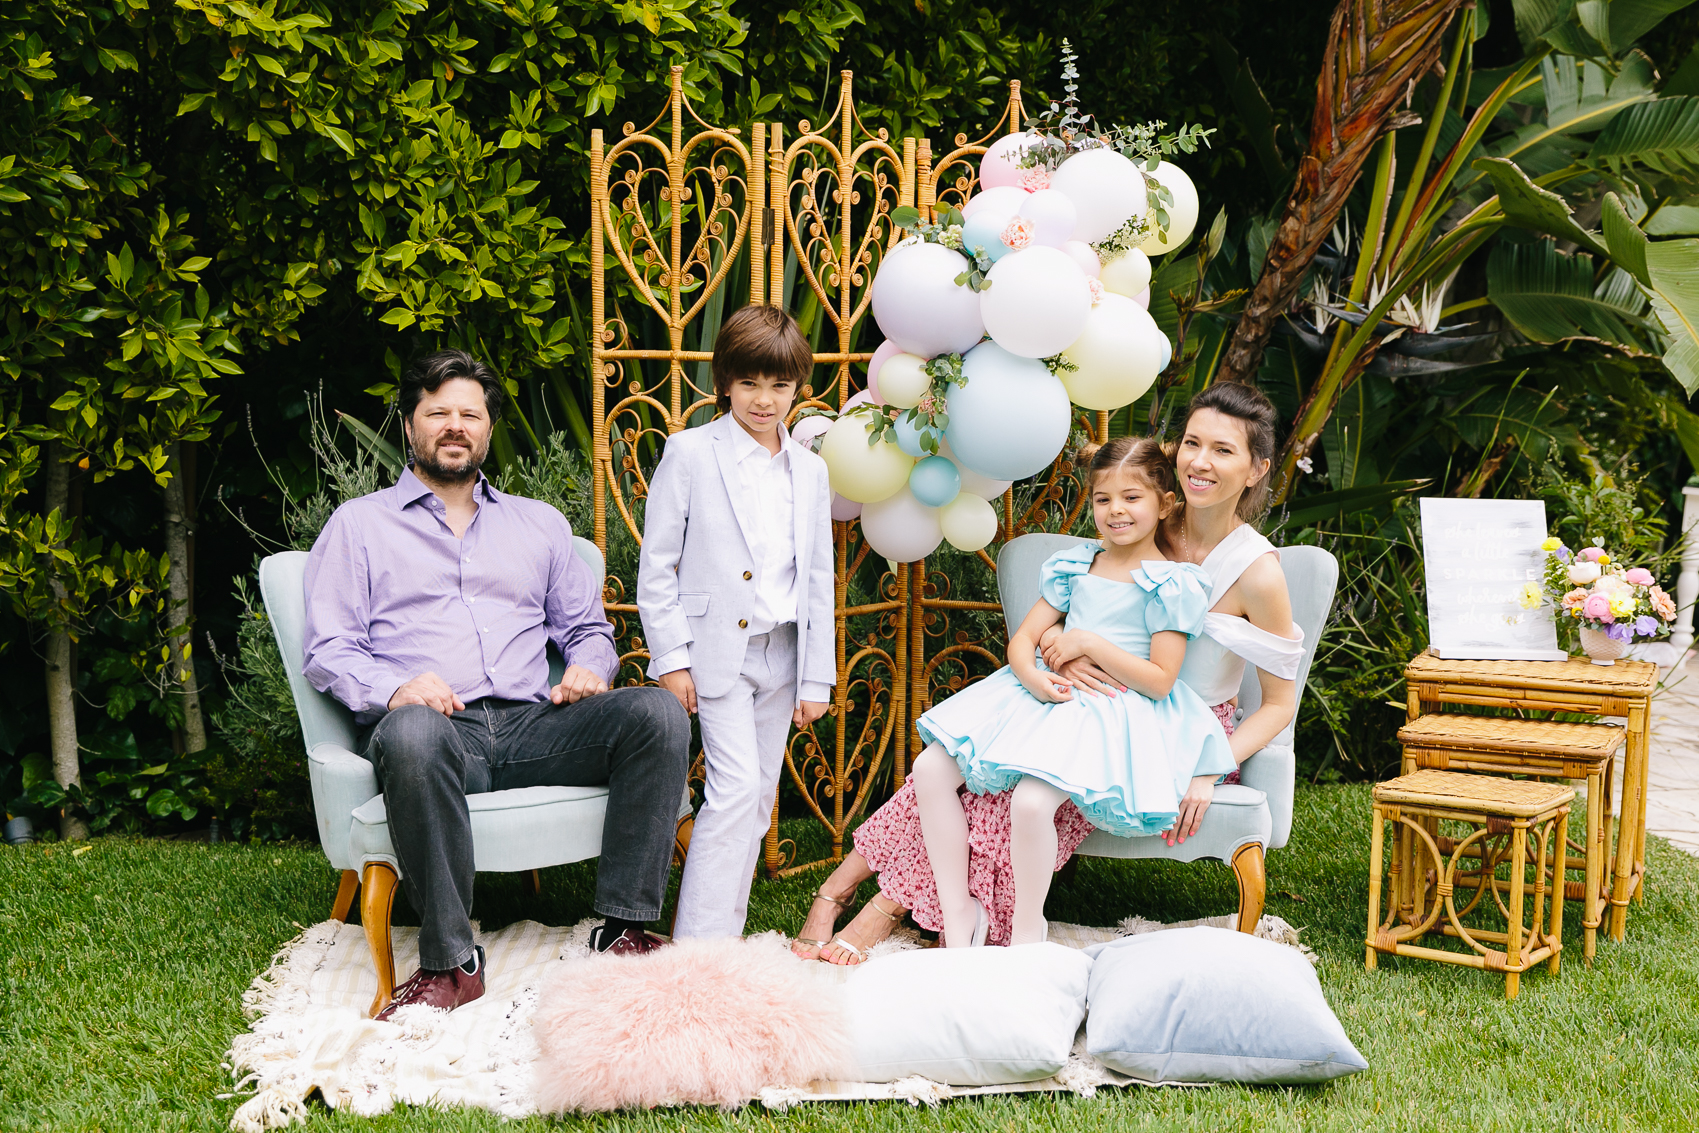 Los_Angeles_Family_Photographer_Luxury_Childrens_Party_Beverly_Hills_Unicorn_Birthday_Party-0405.jpg